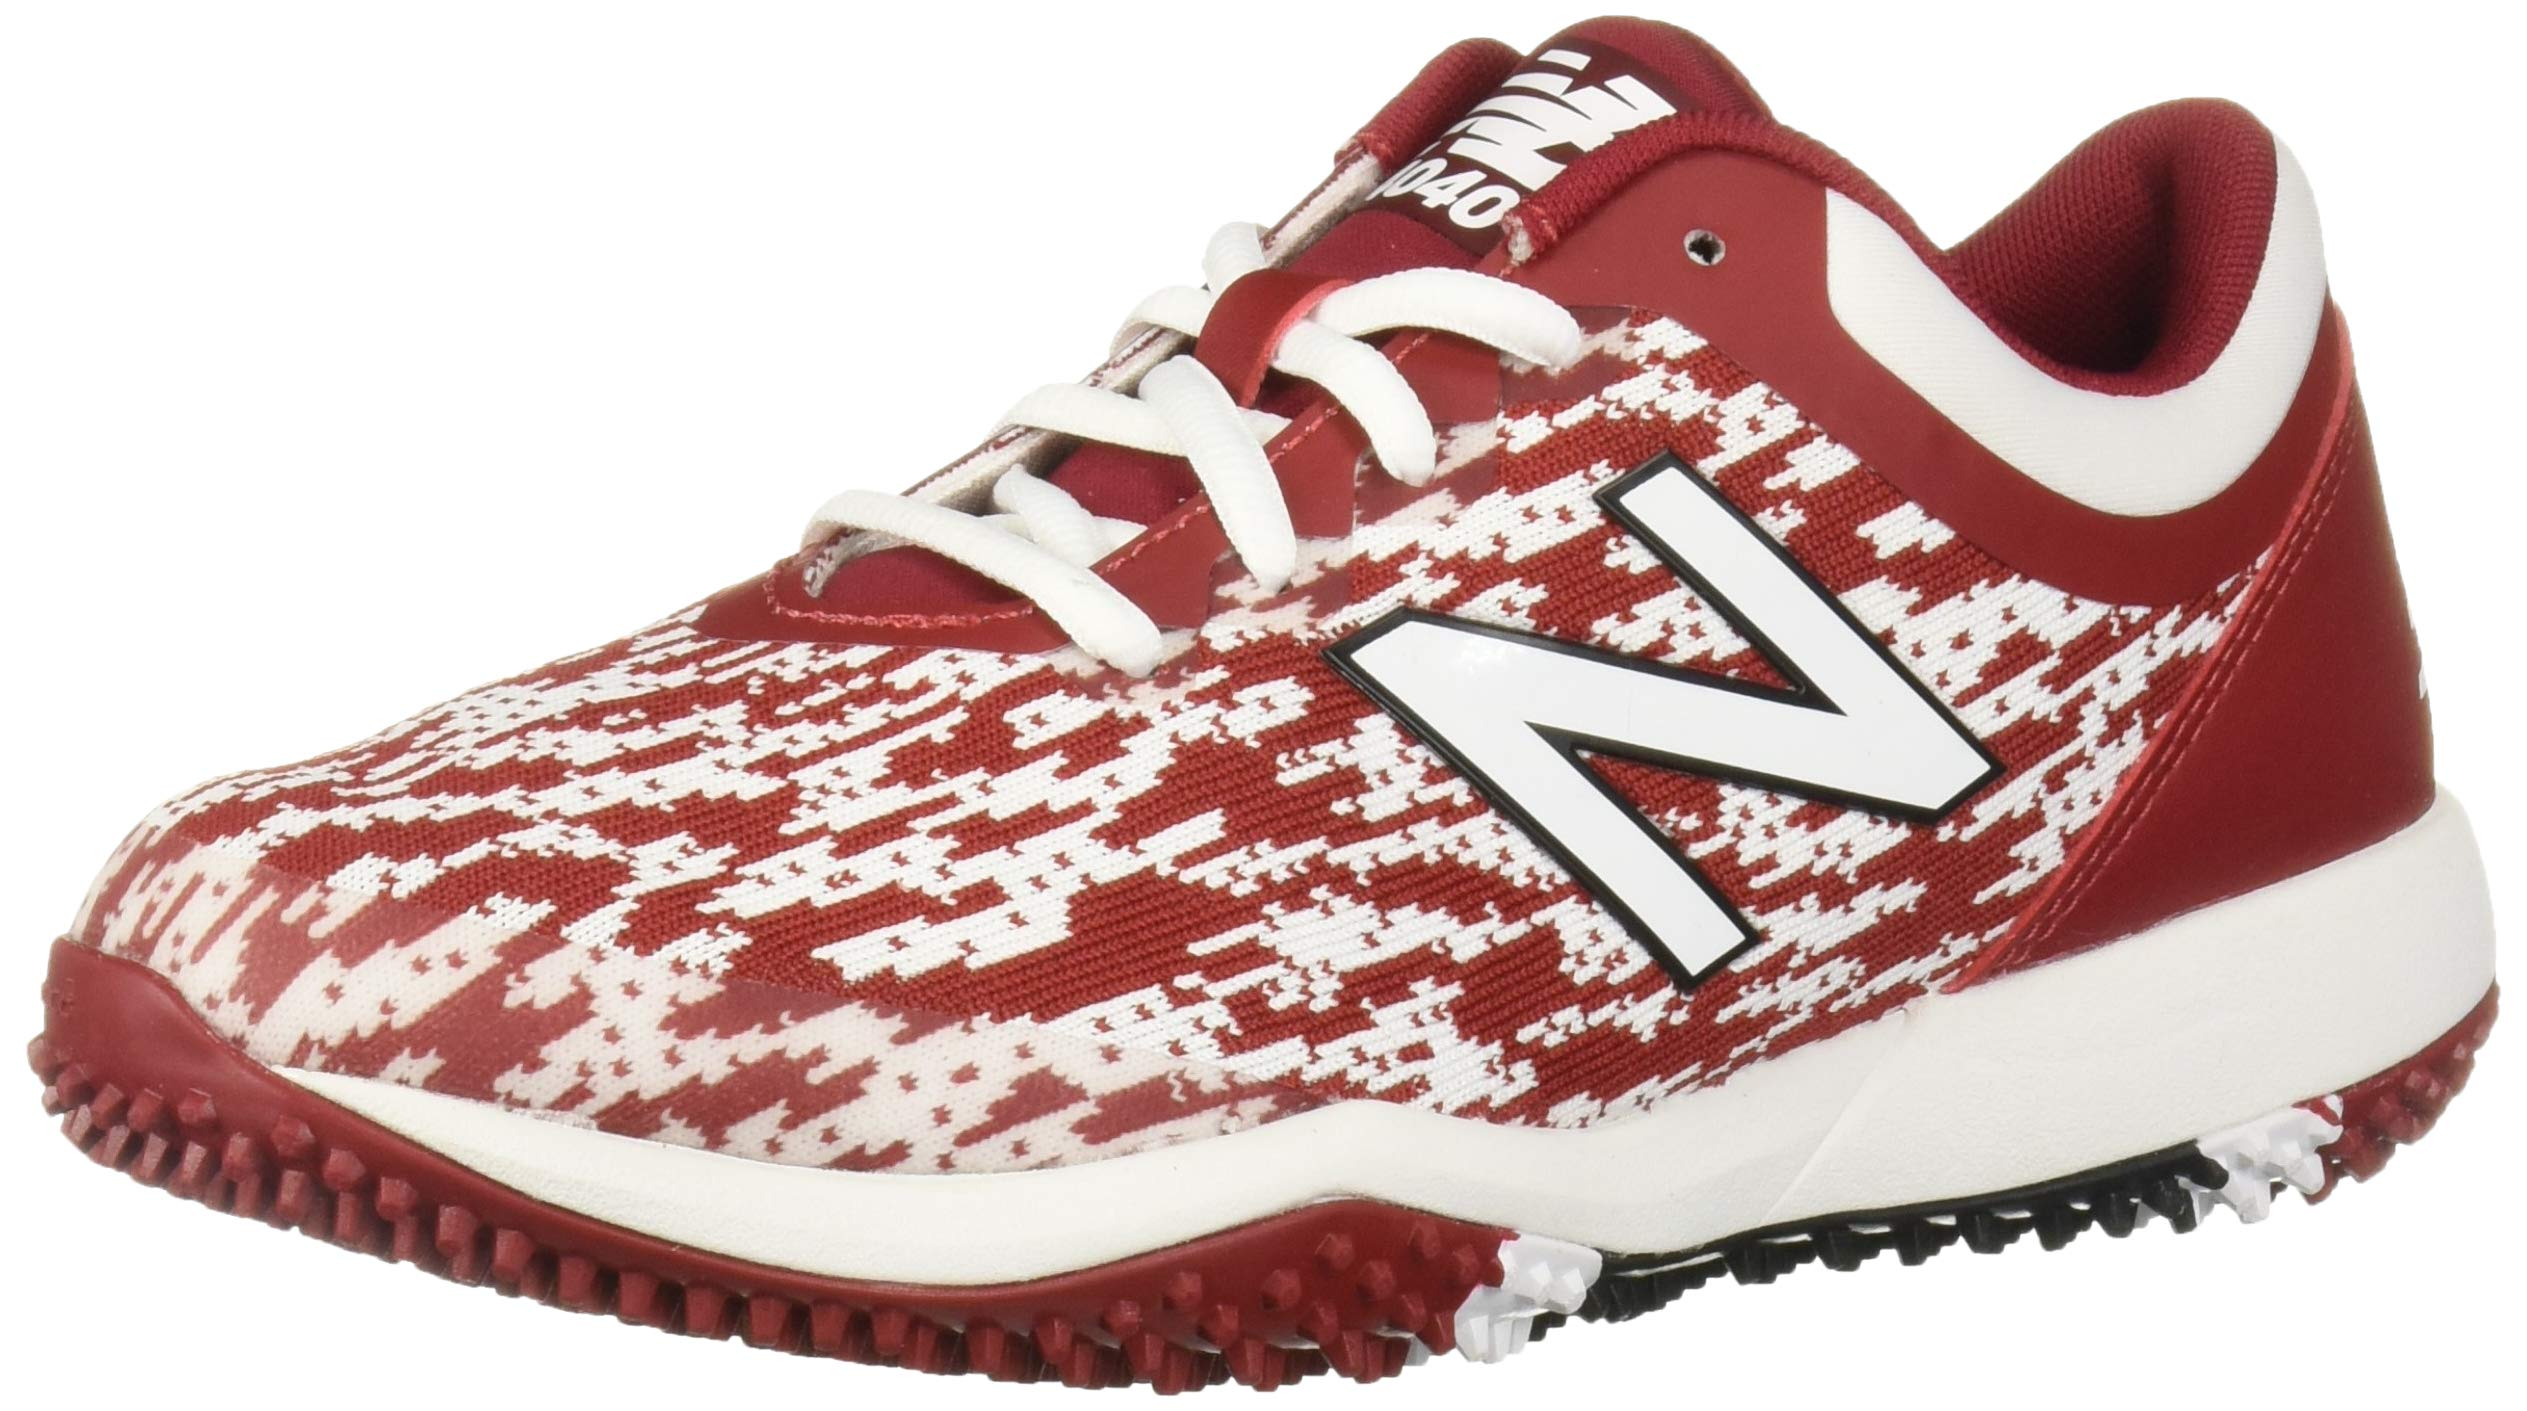 New Balance Men's 4040v5 Turf Track and Field Shoe, Maroon/White, 5 D US by New Balance